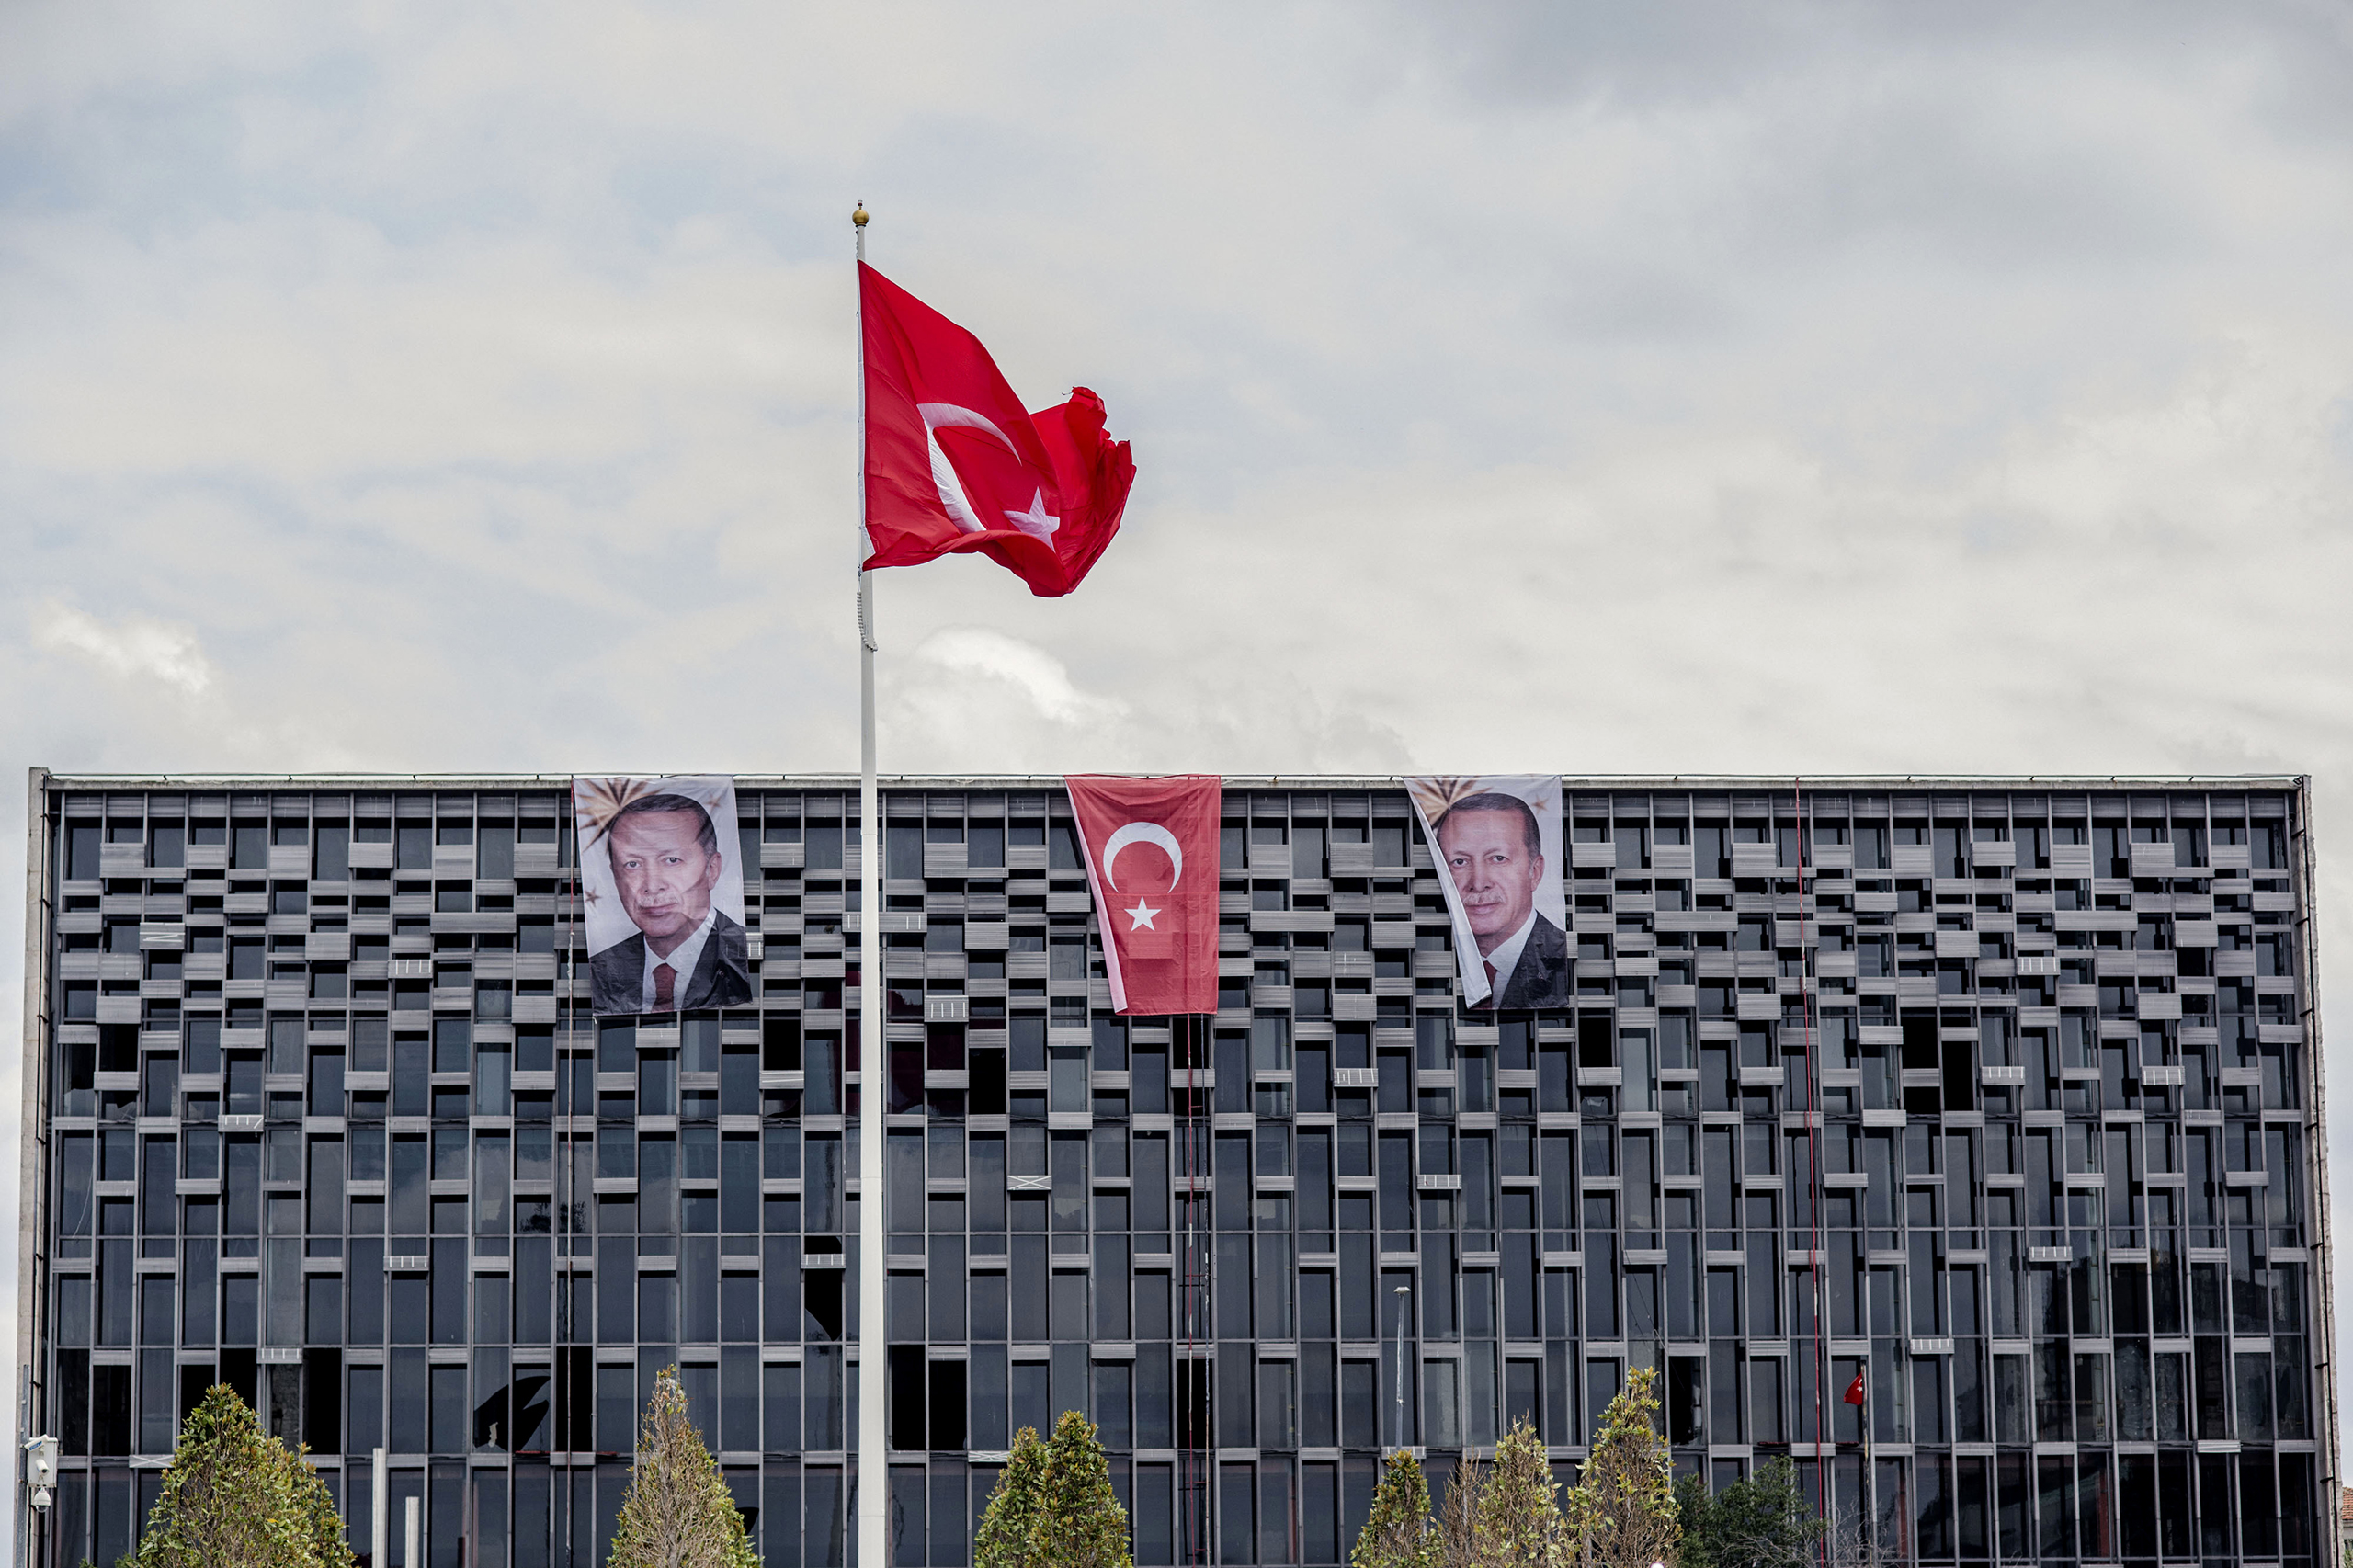 Banners with photographs of President Recep Tayyip Erdogan hang from the roof of a commercial building alongside the national flag in Istanbul, Turkey, on July 18, 2016.